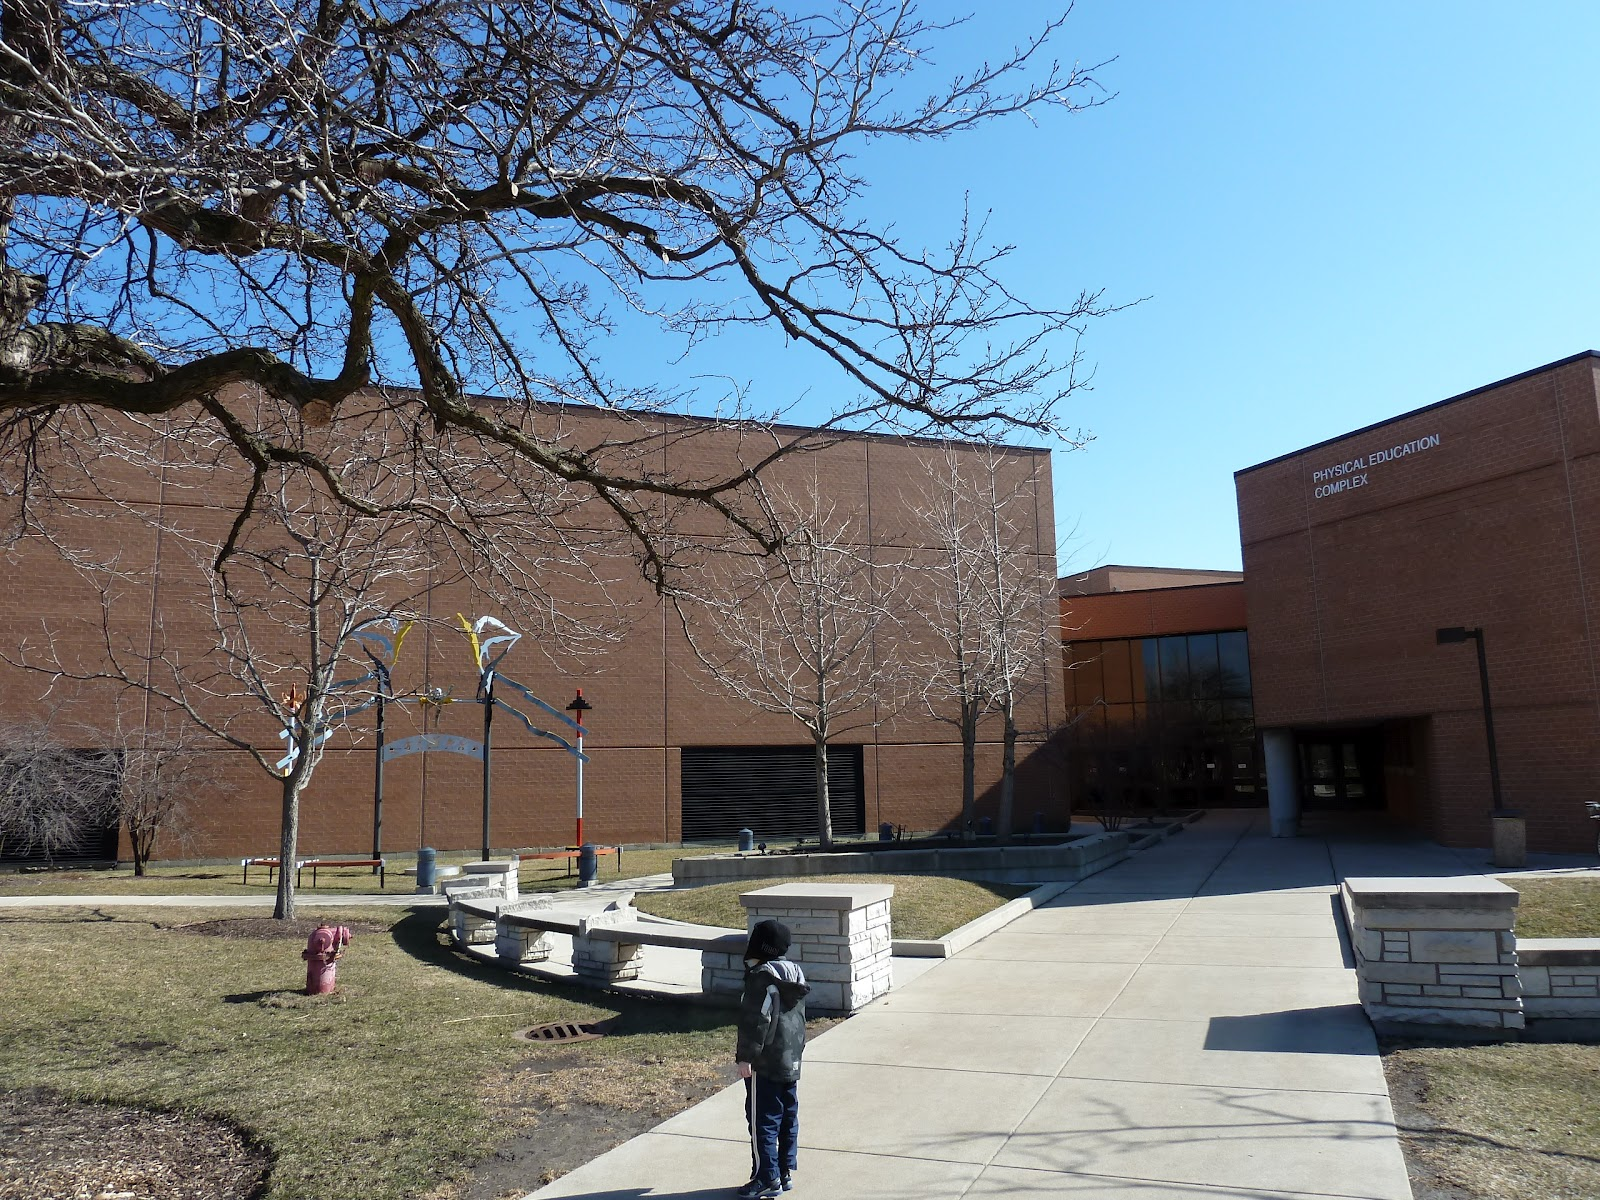 The chicago real estate local fitness kids swimming at - University of chicago swimming pool ...